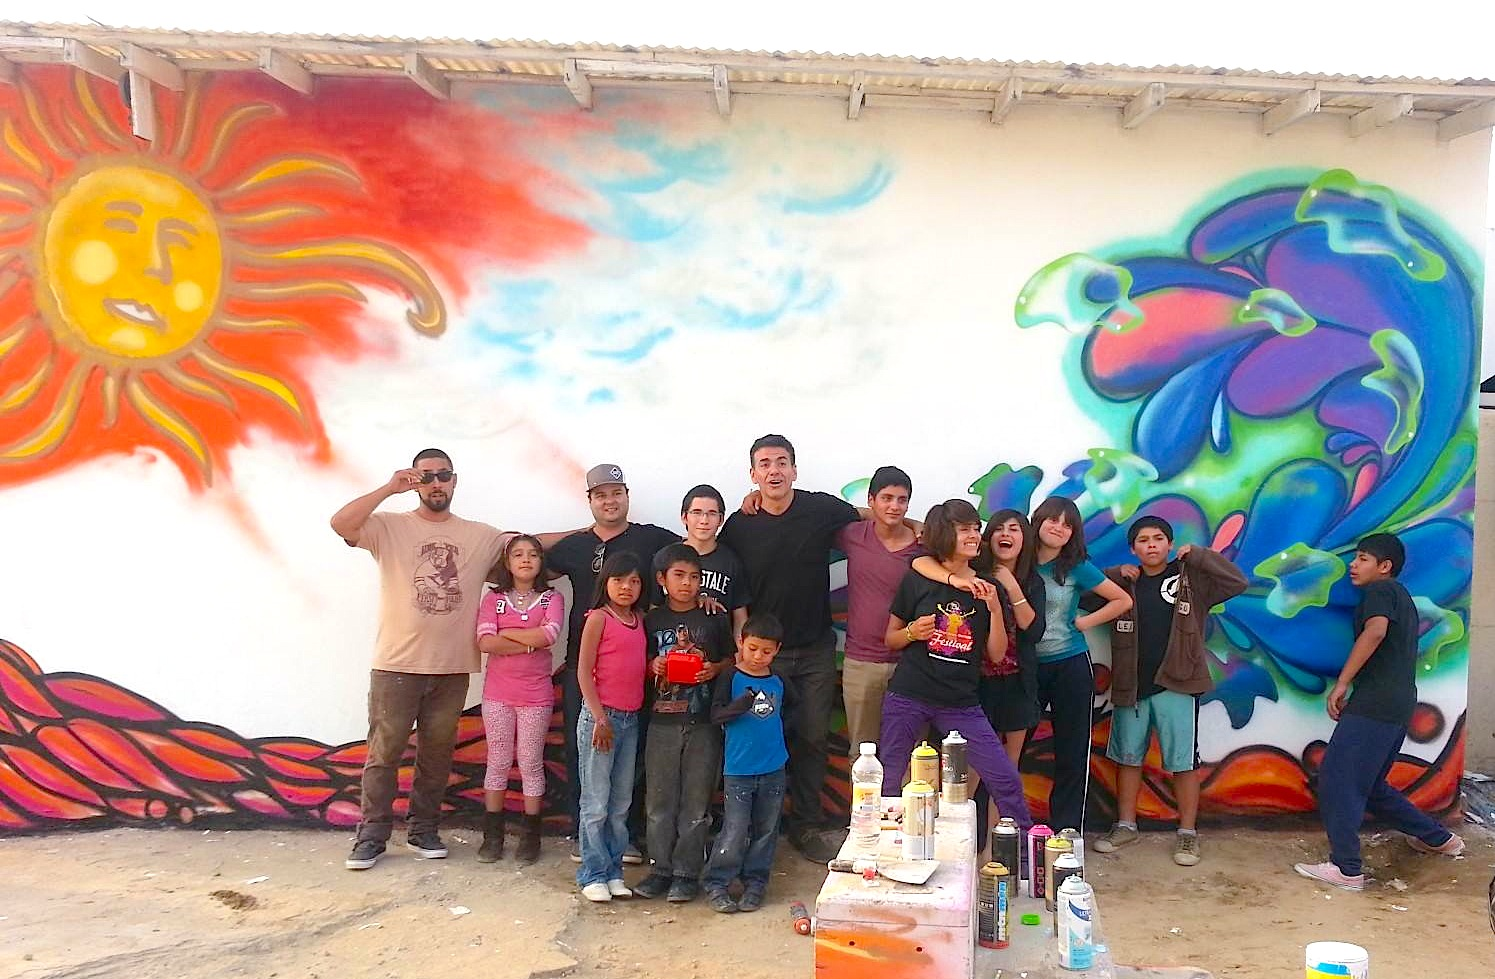 Tijuana local muralists work with orphanage youth to beautify their community